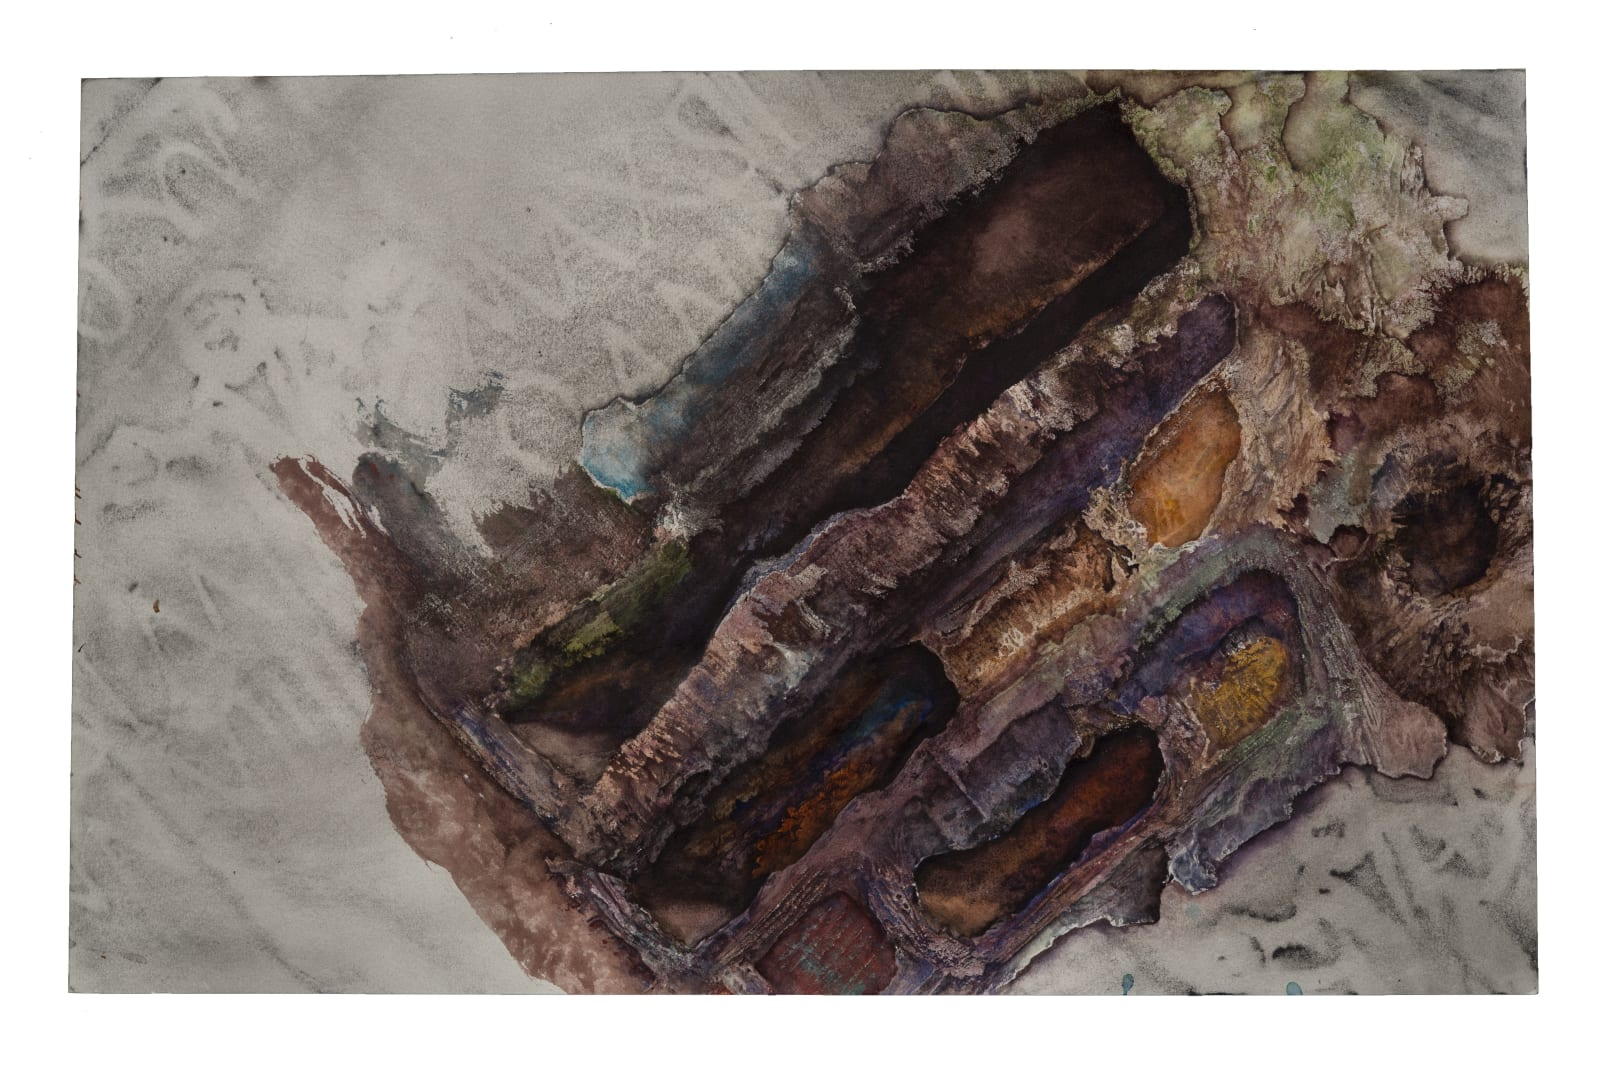 Liminatus Hikmet, 2008 - 2020 Watercolor, graphite, and frottage on paper. 12 x 19 in. (TM 29) $4,000